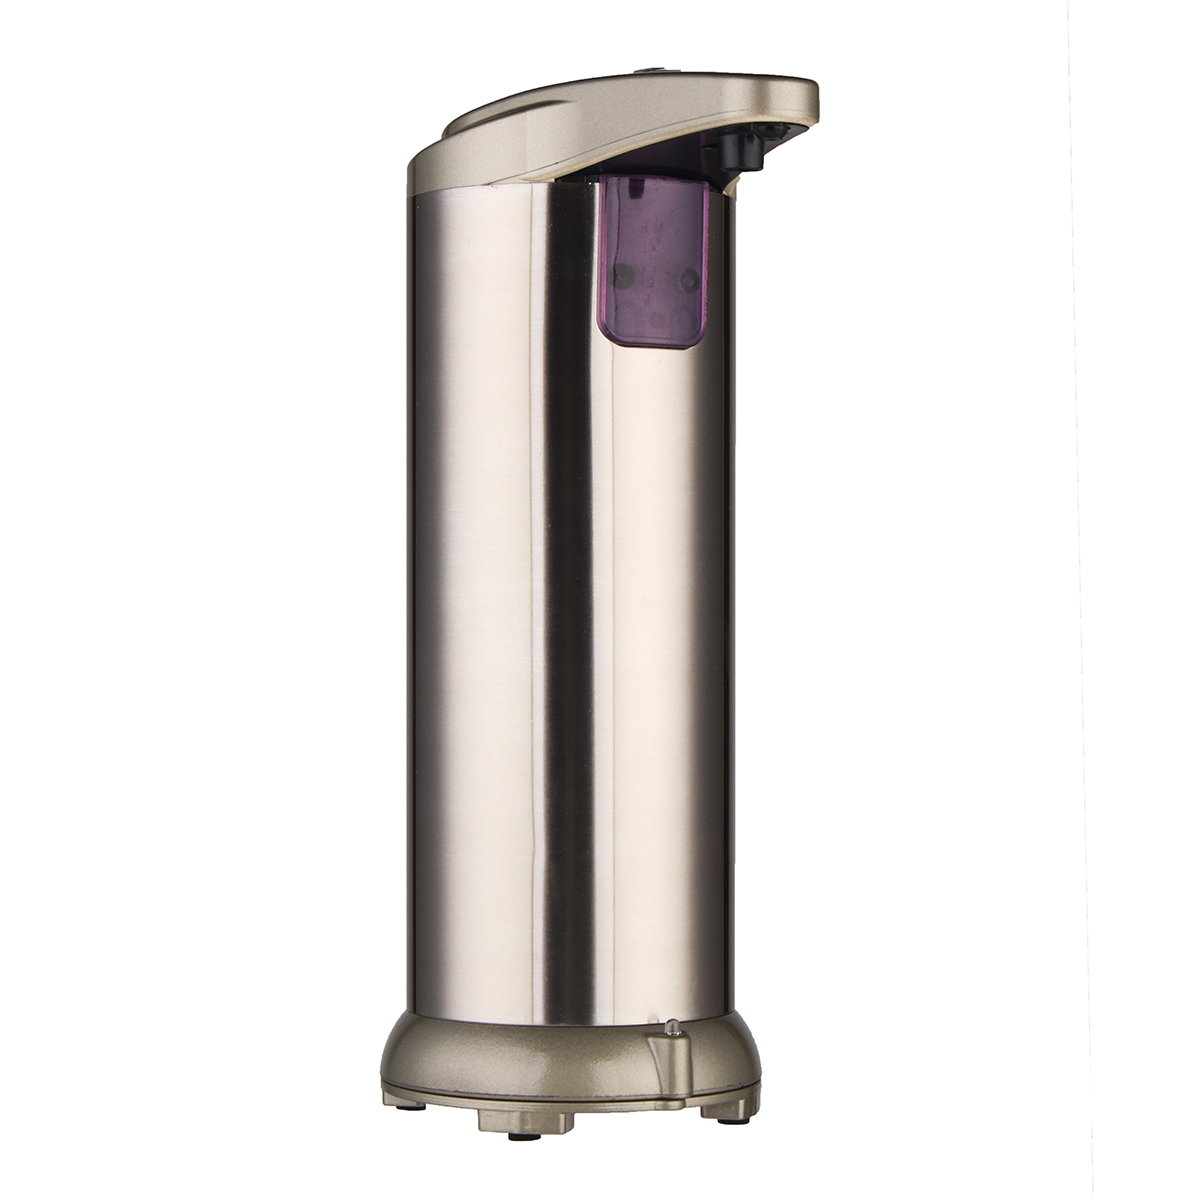 Stainless Steel Autoinduction Soap Dispenser Hair Shampoo